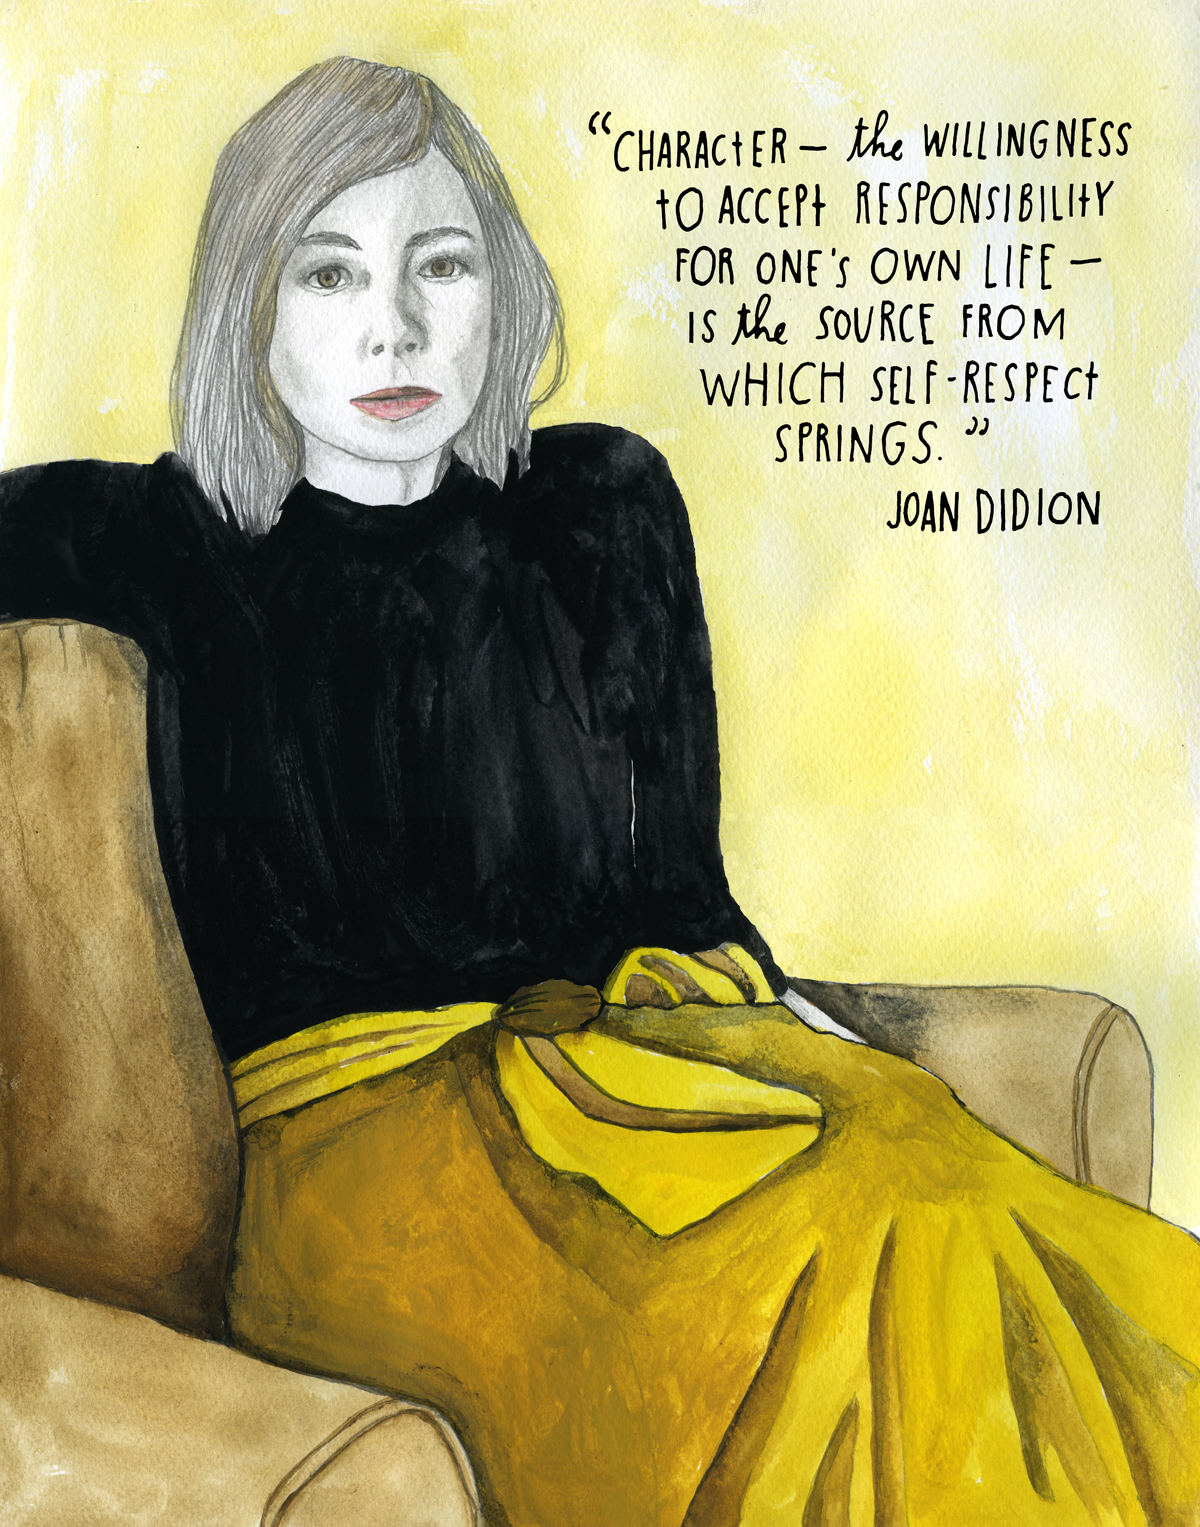 Joan Didion's quote #5